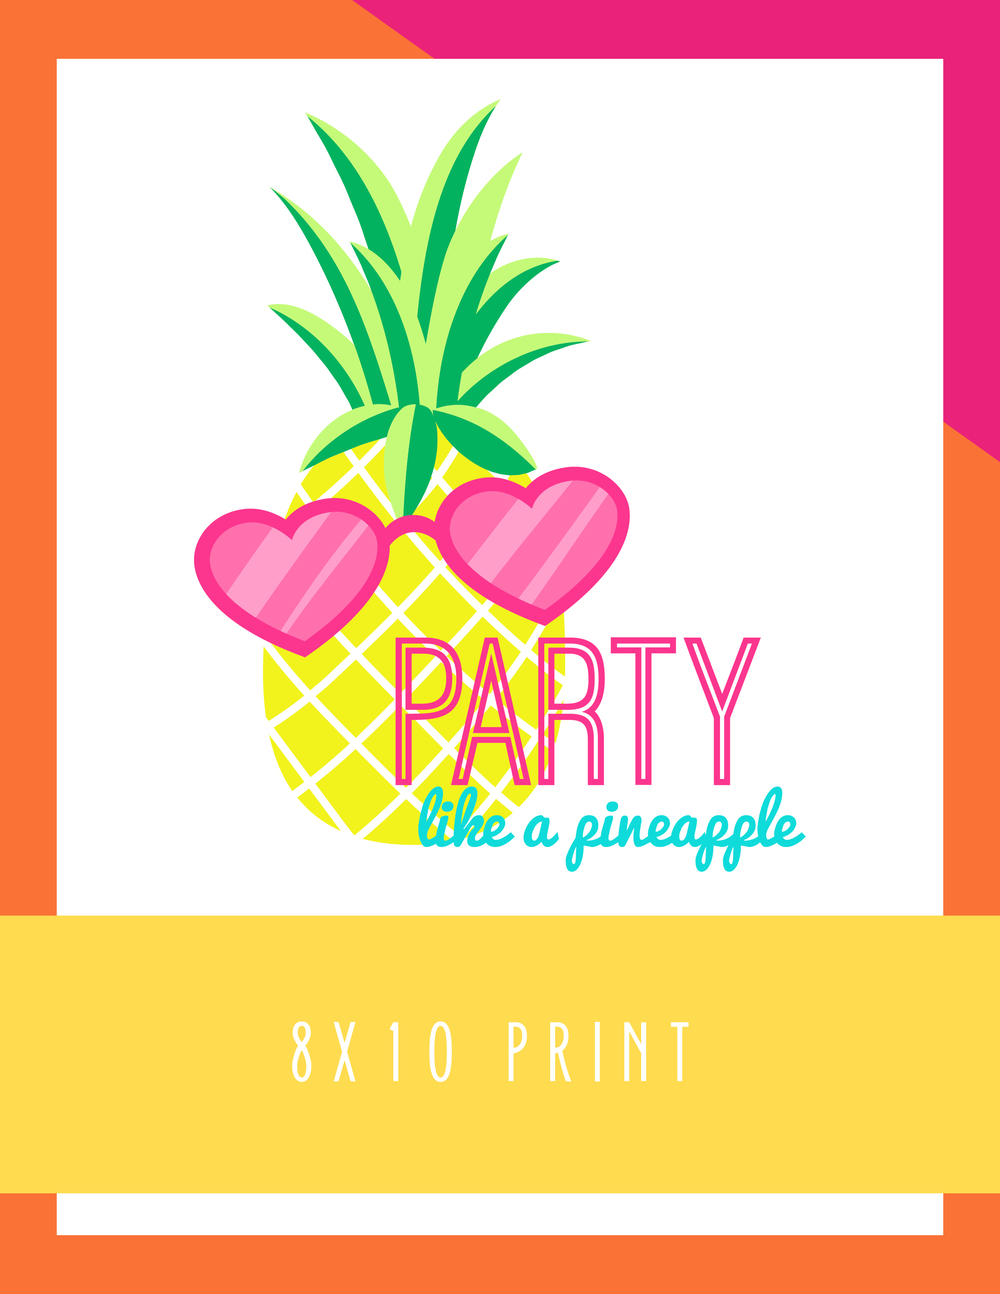 Bold & Pop Freebies Party Like a Pineapple 8x10 Print